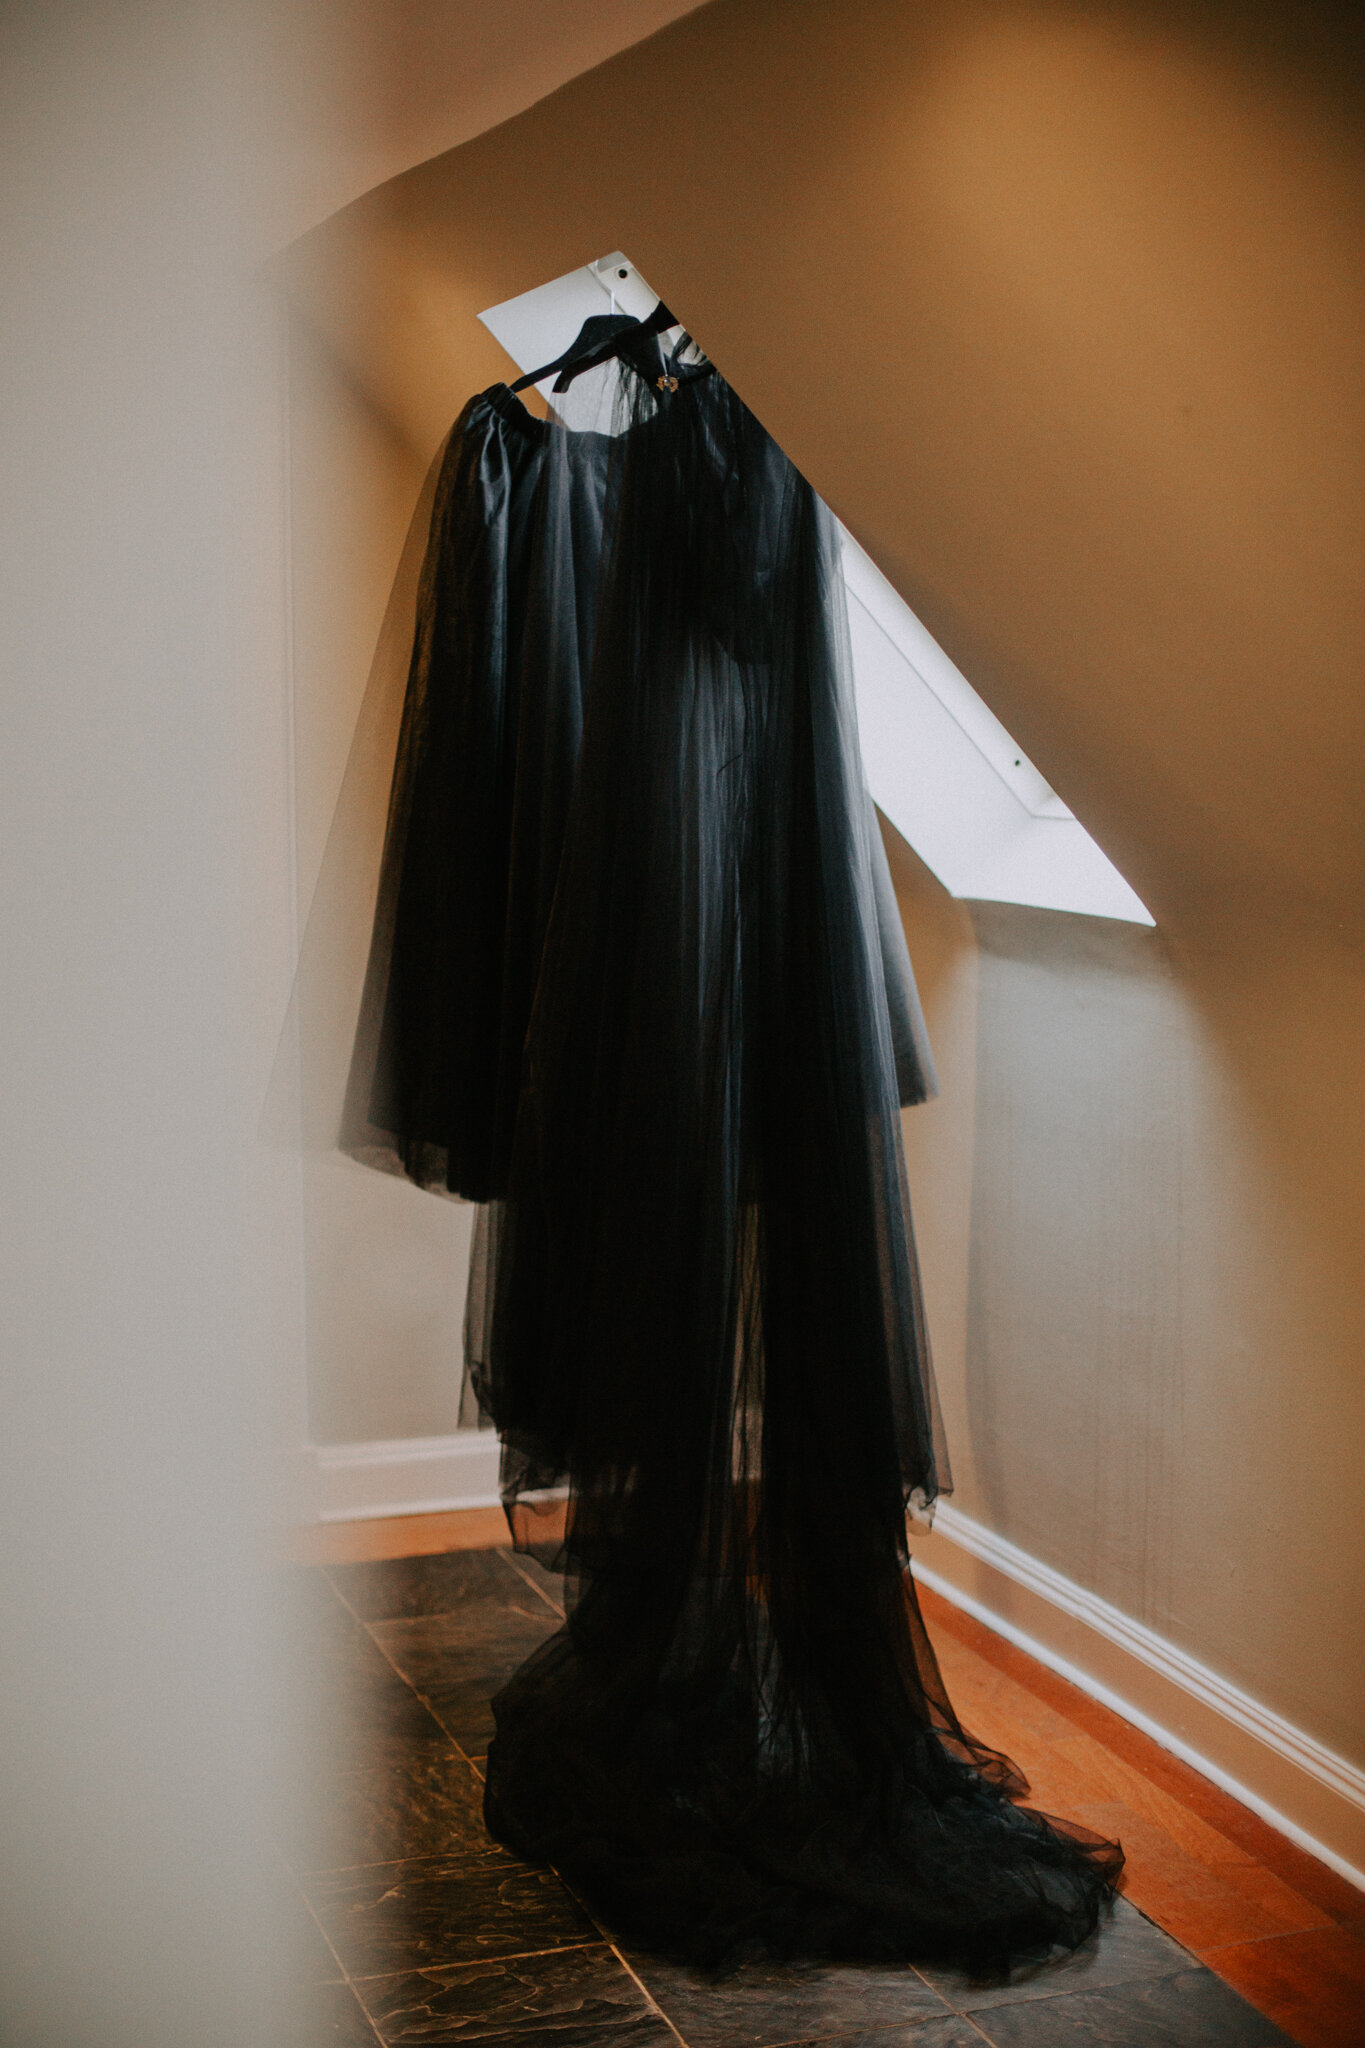 Halloween wedding outfit is hanging next to the window